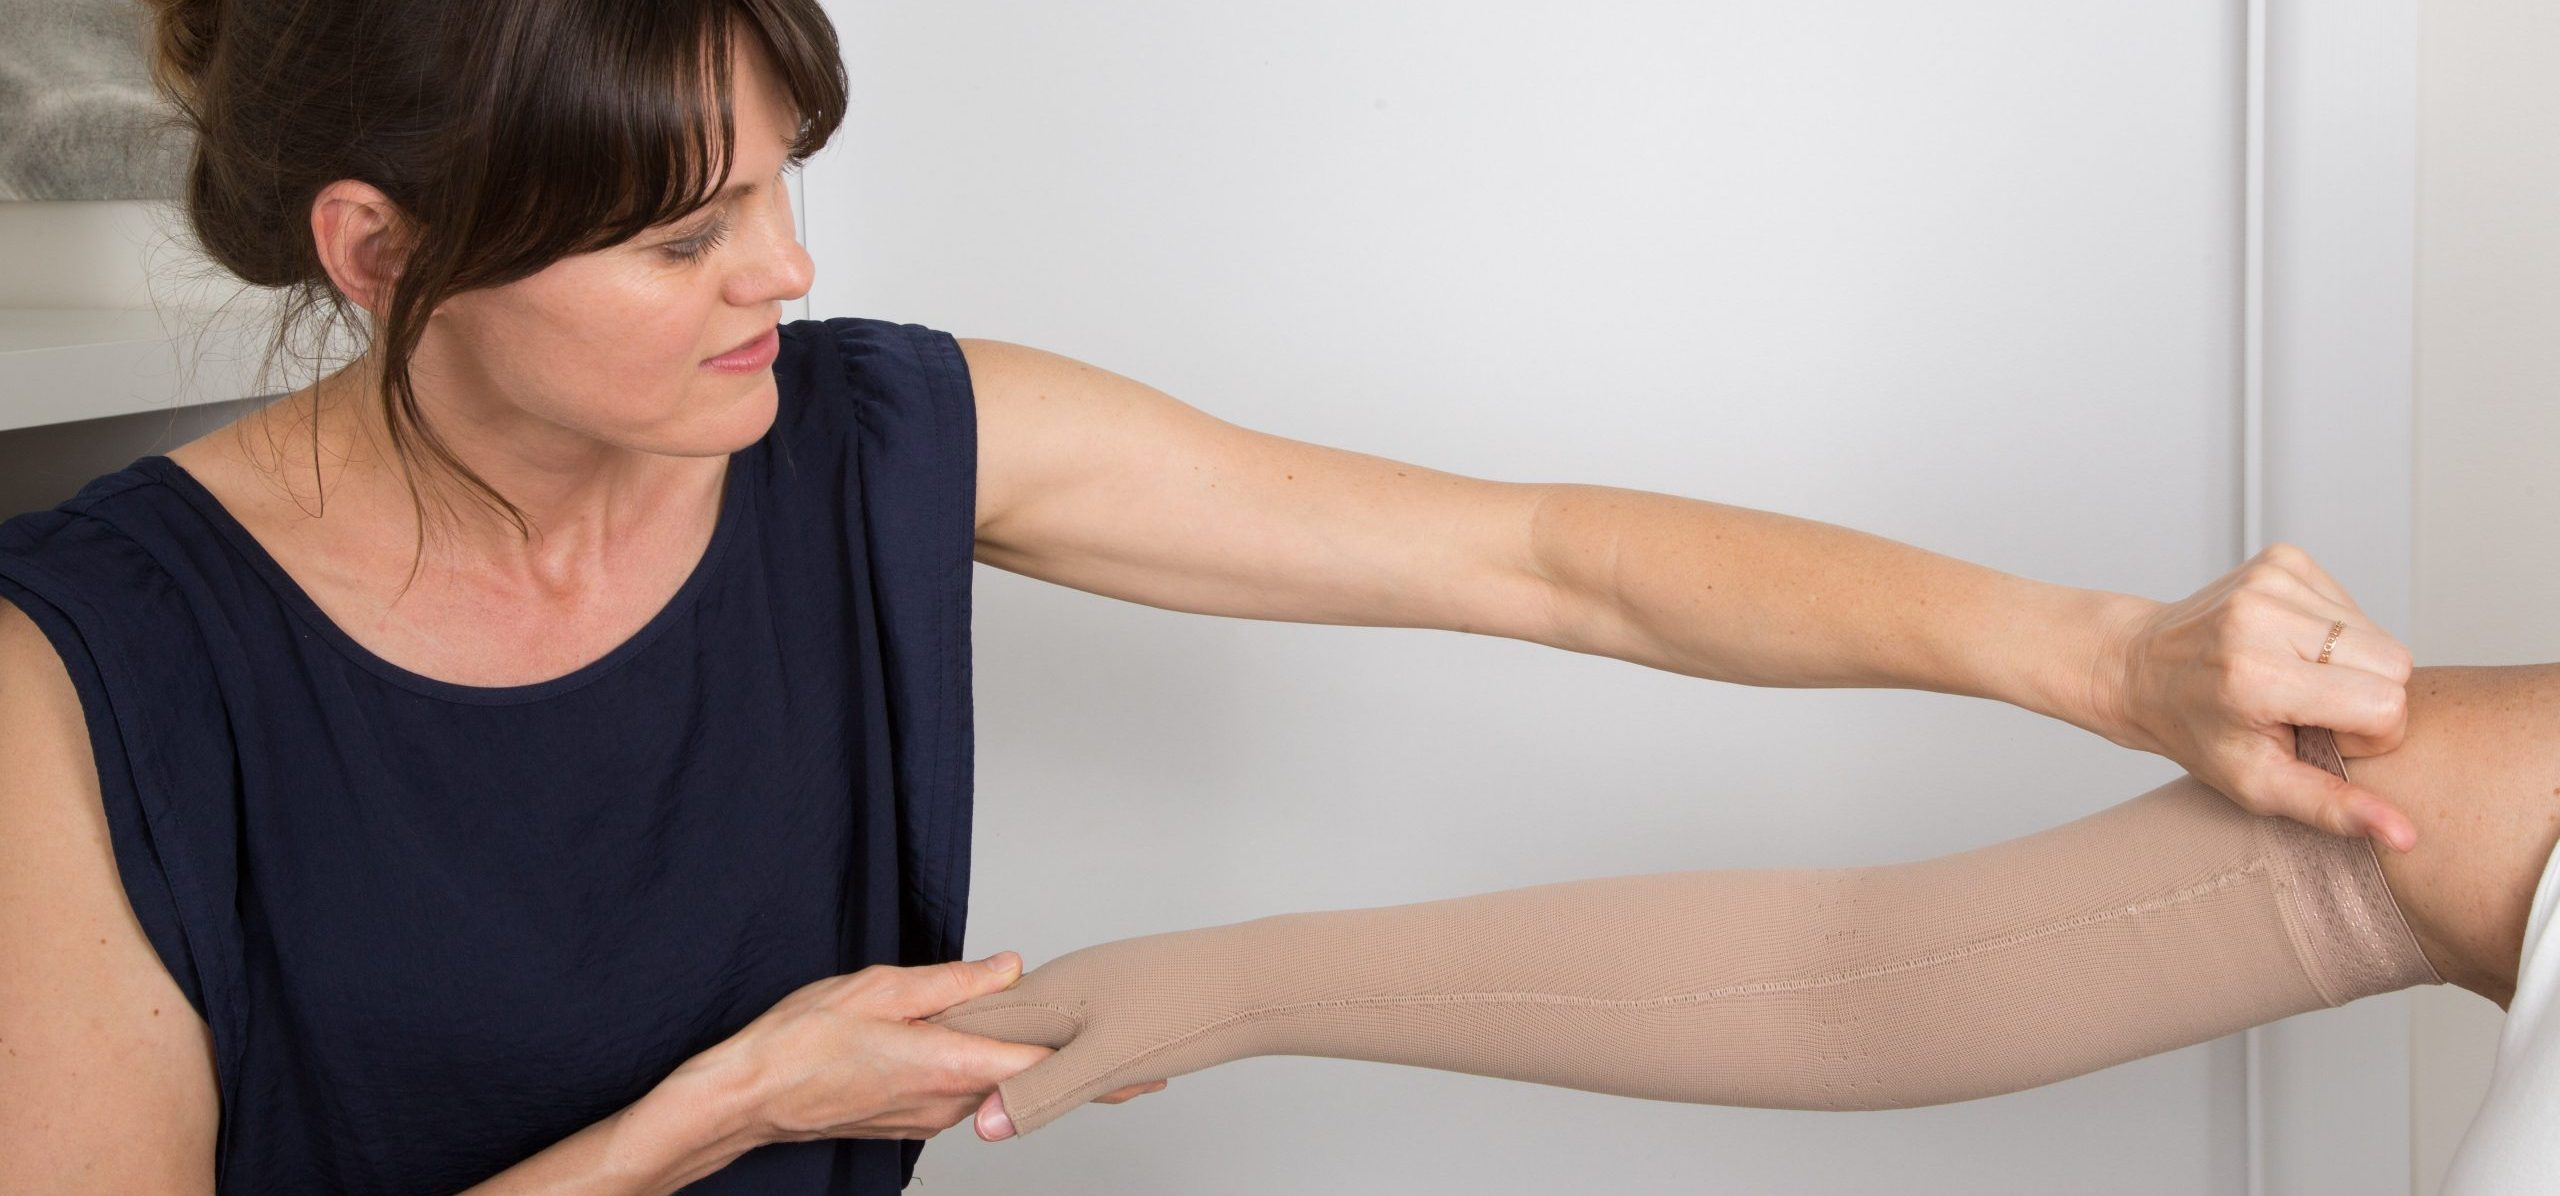 Oncology Recovery Services - Orsi ensuring armband fits a client